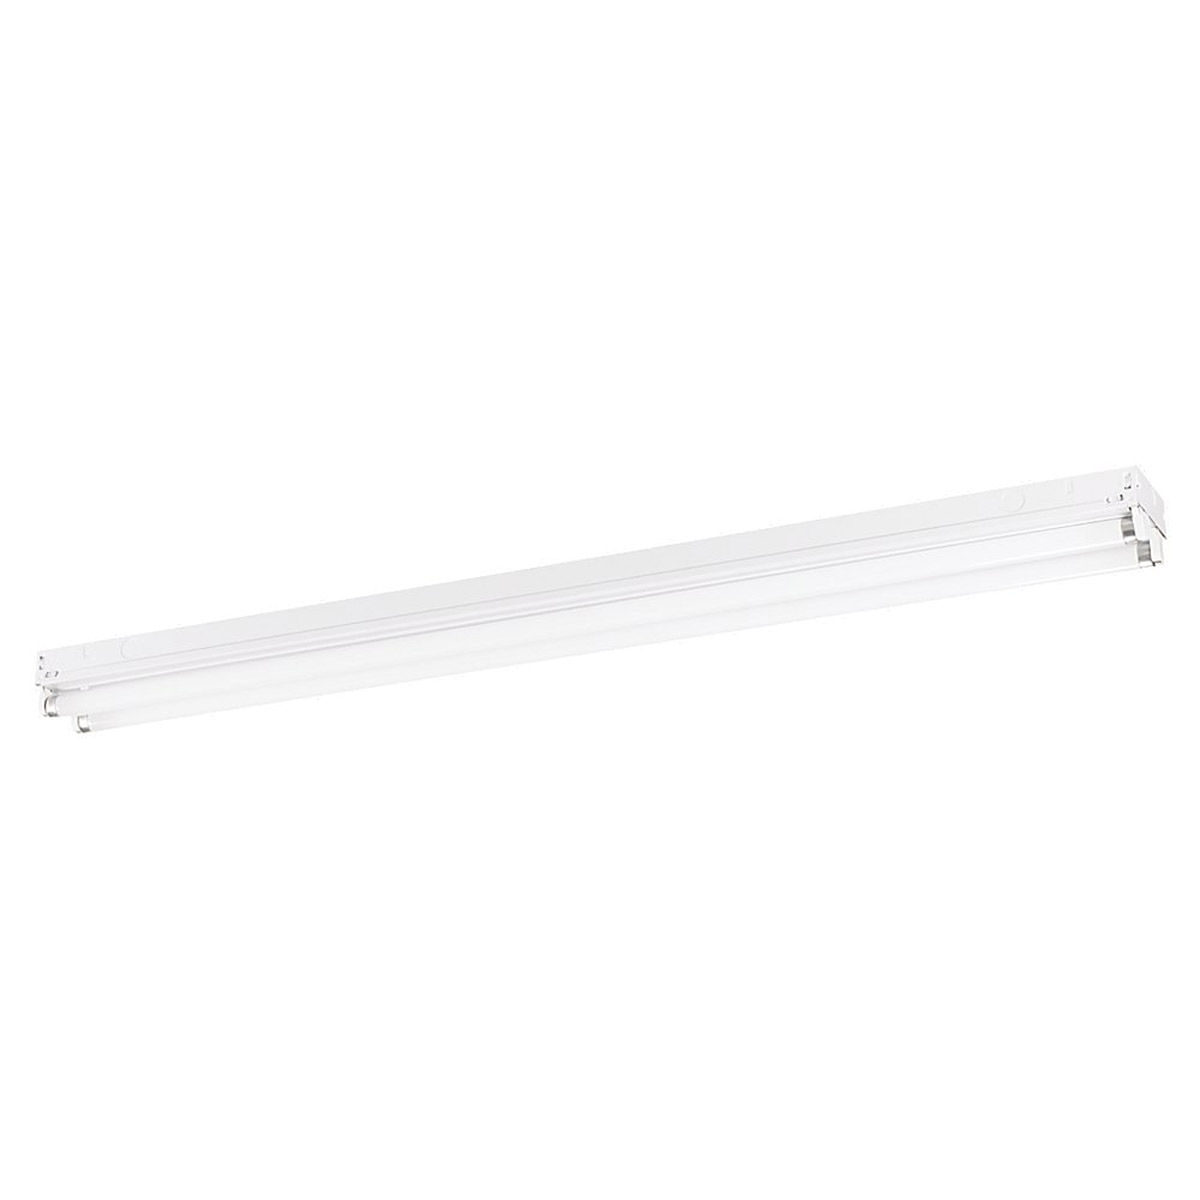 Sea Gull Lighting Signature 2 Light Fluorescent Strip Light in White 59022LE-15